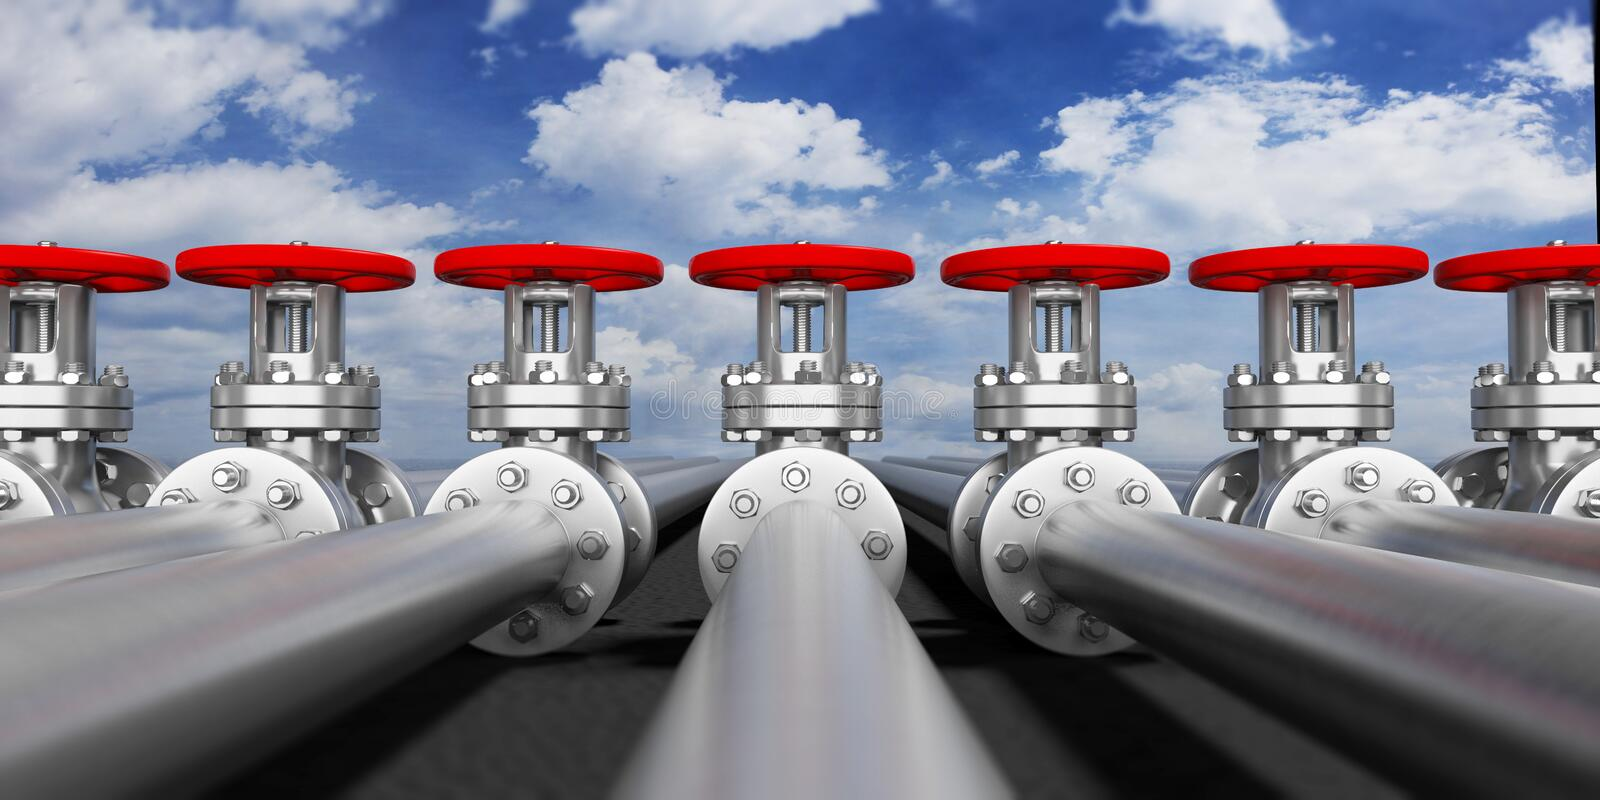 Industrial pipelines and valves on blue sky background, banner. 3d illustration vector illustration